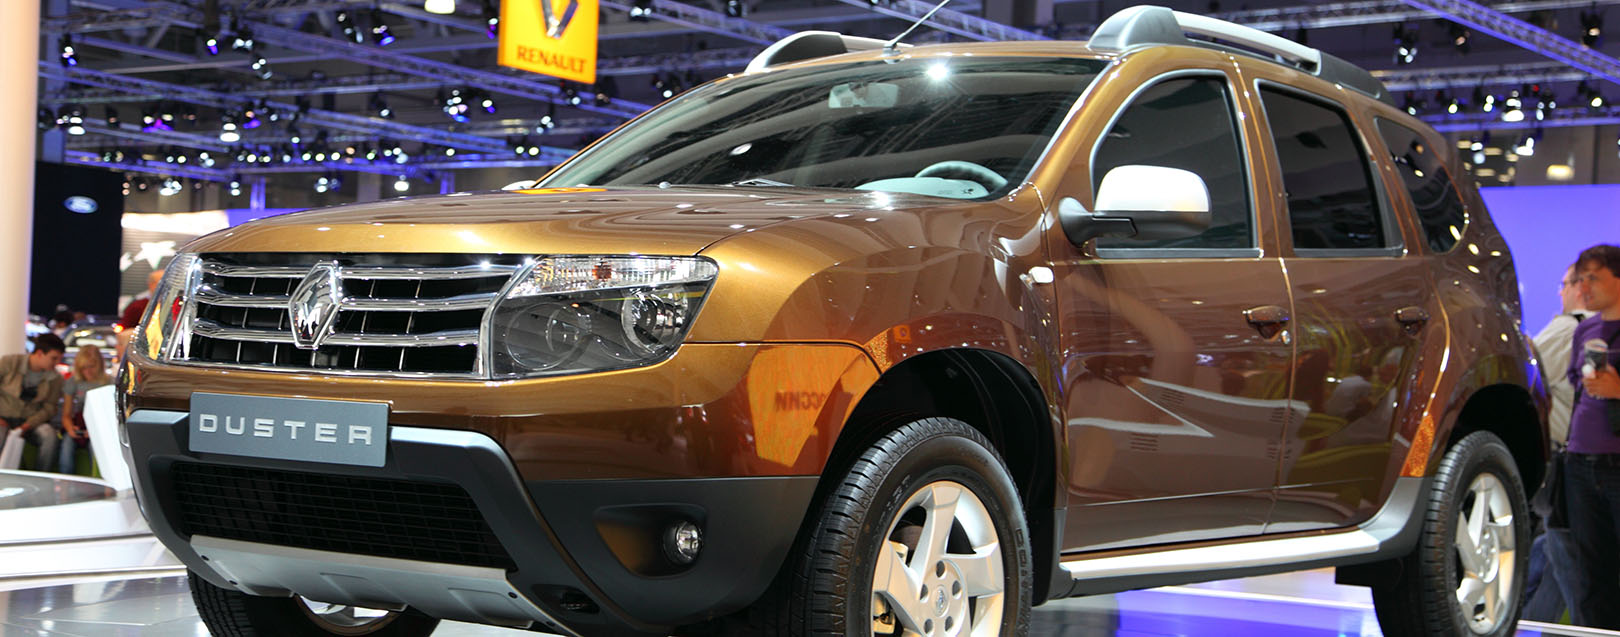 Kwid, Duster to be exported to Nepal from India